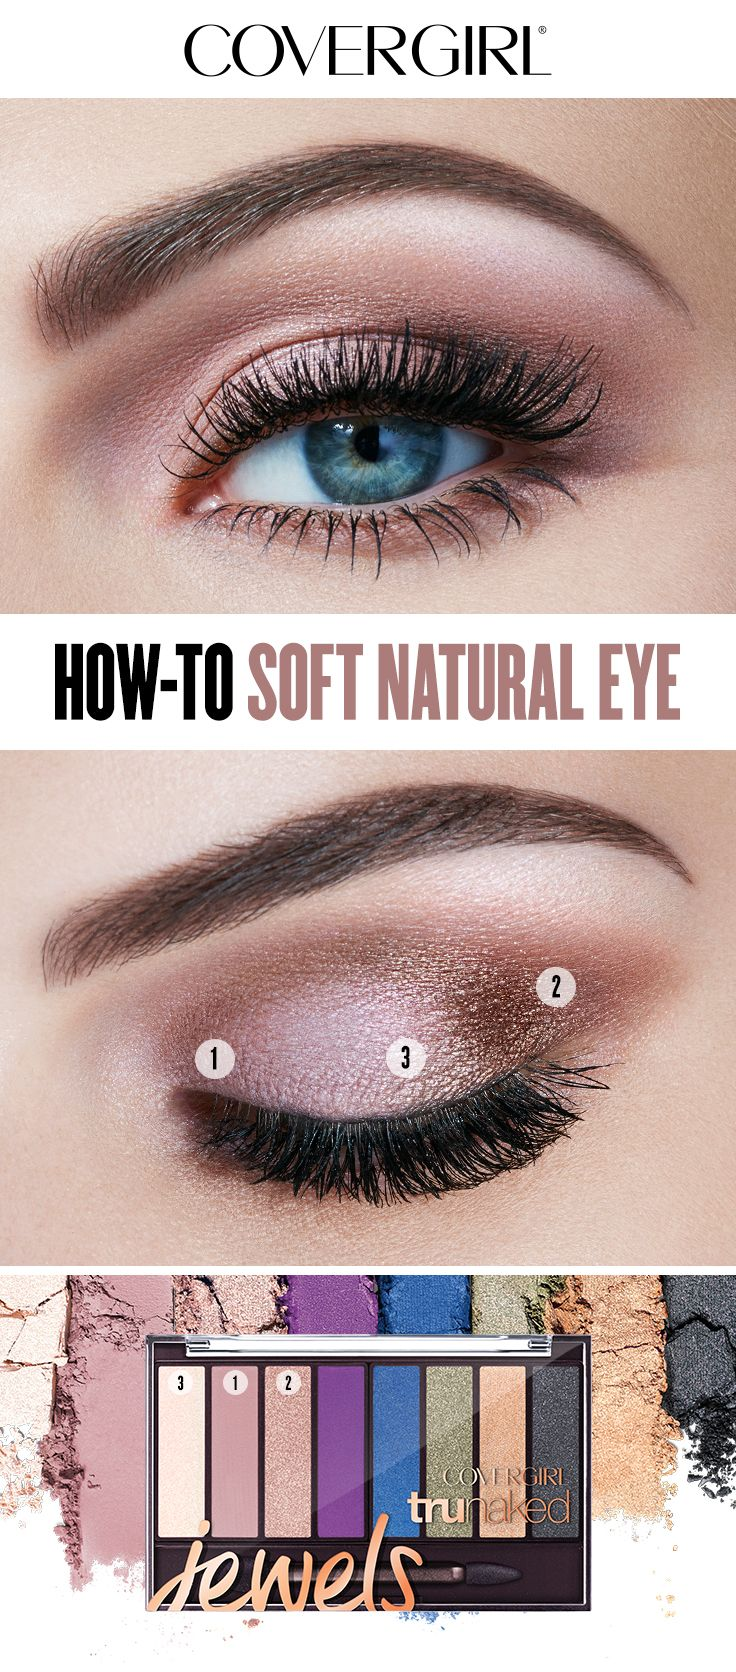 Heres How To Create The Soft Natural Eye Designed By Covergirl